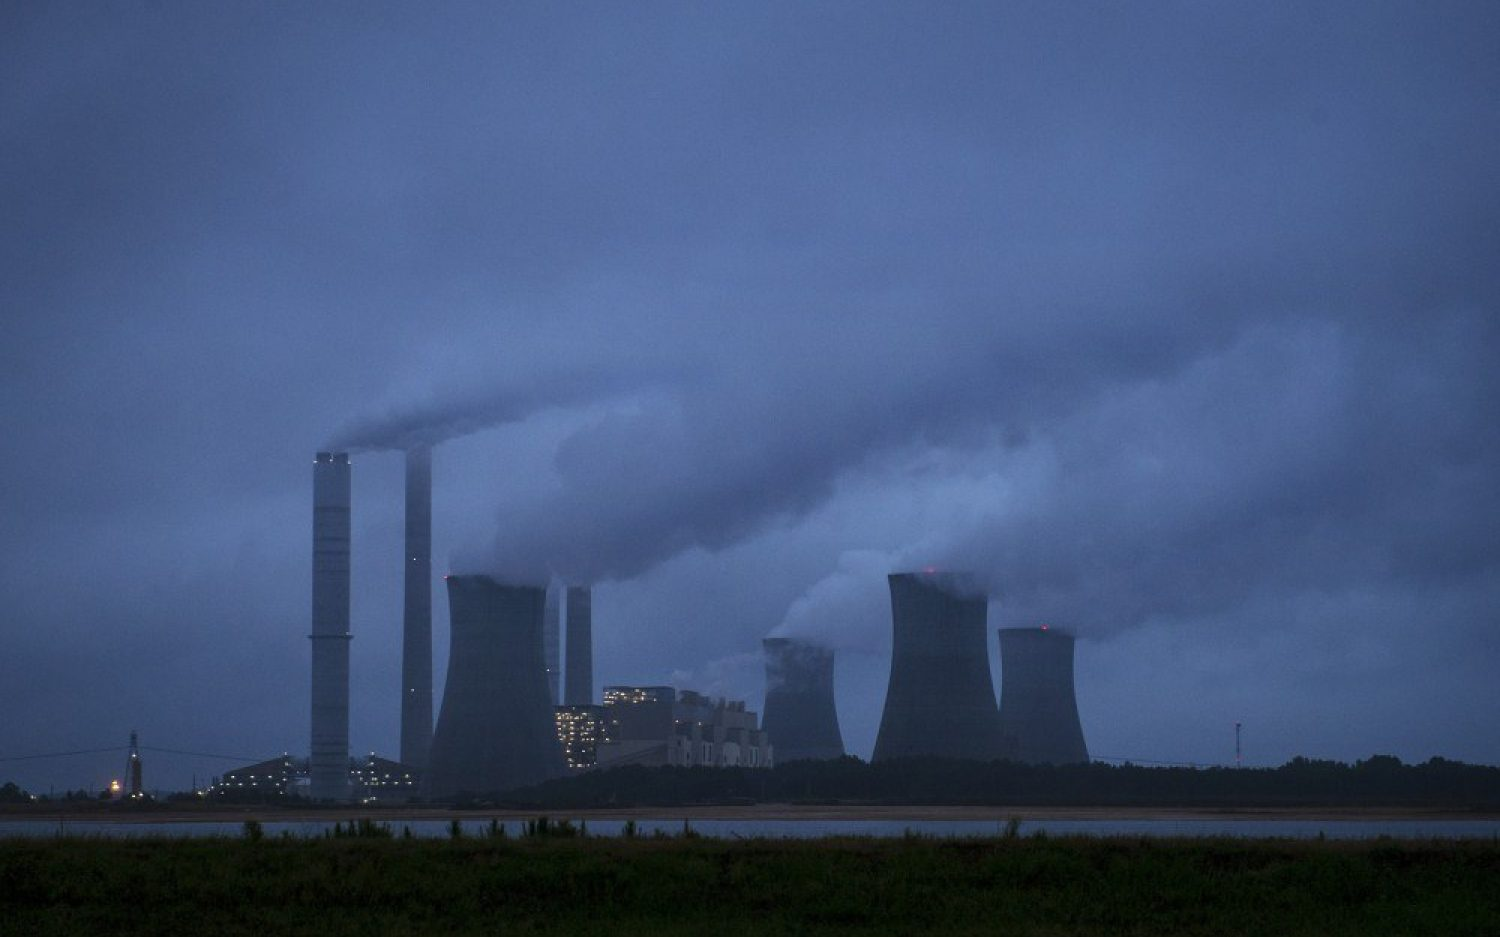 Obama caps power plant emissions with new EPA rules